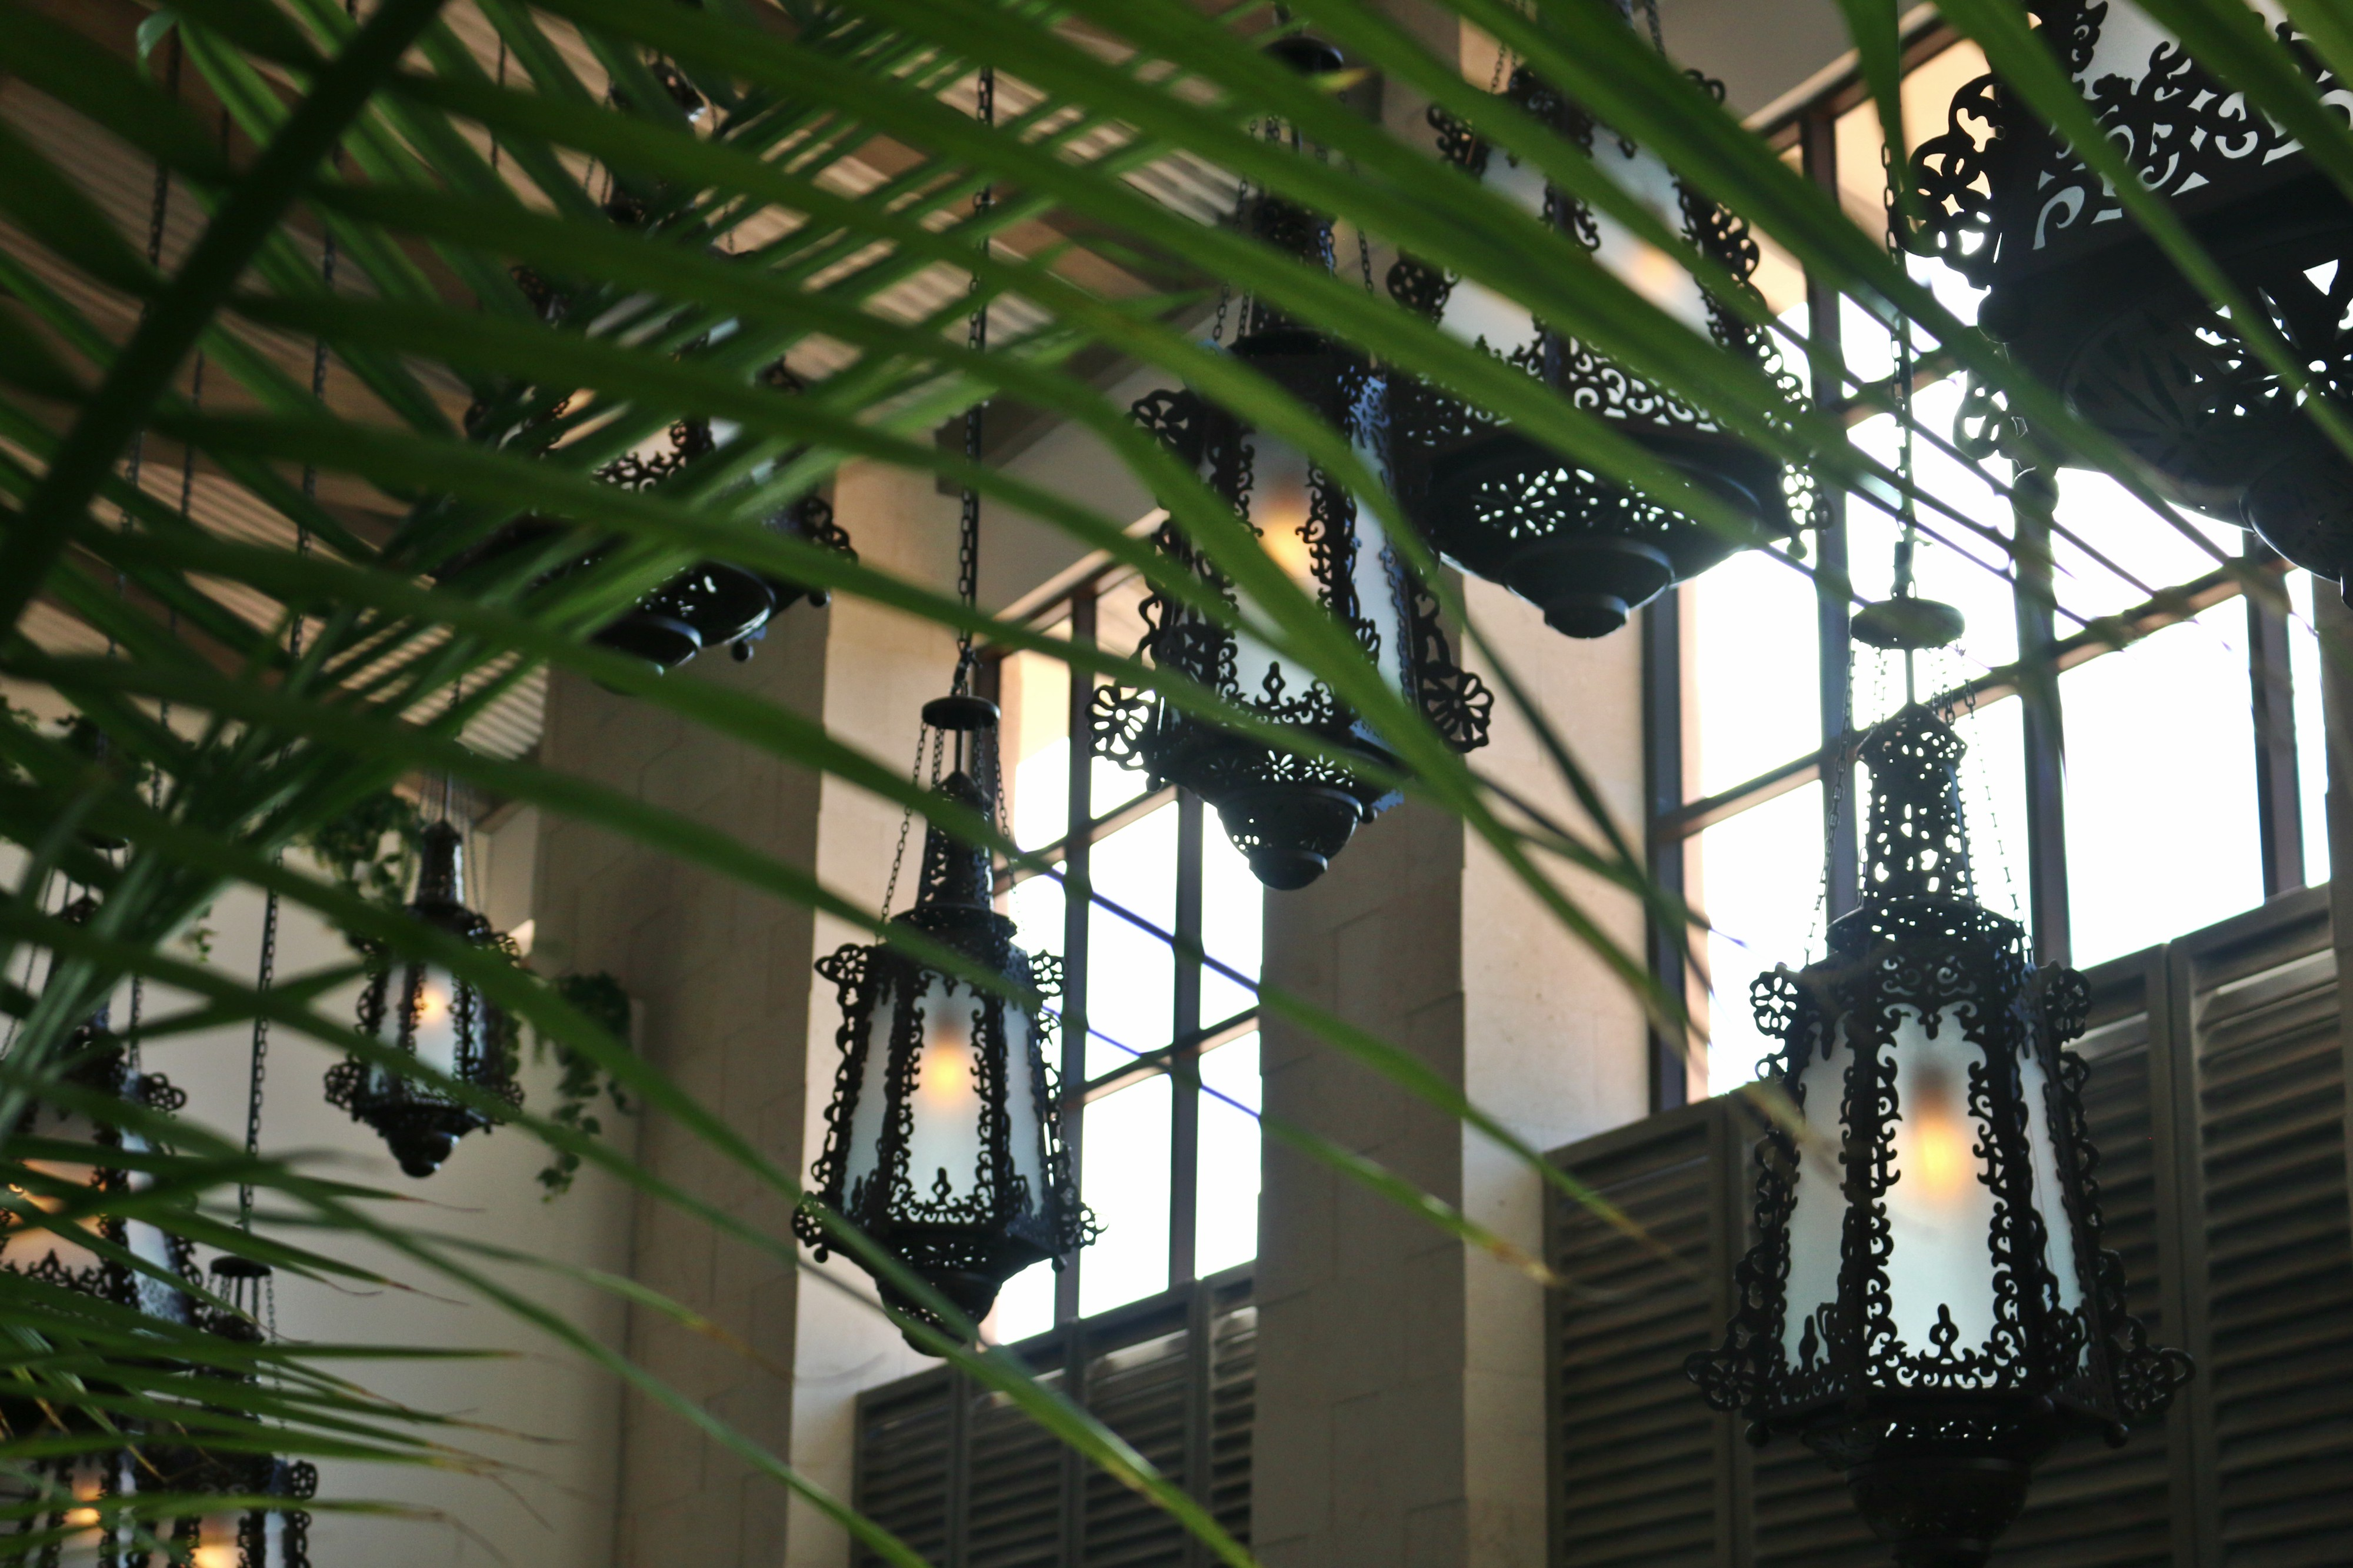 Giant wrought-iron lanterns hang haphazardly in the lobby, creating a warm and relaxing atmosphere.